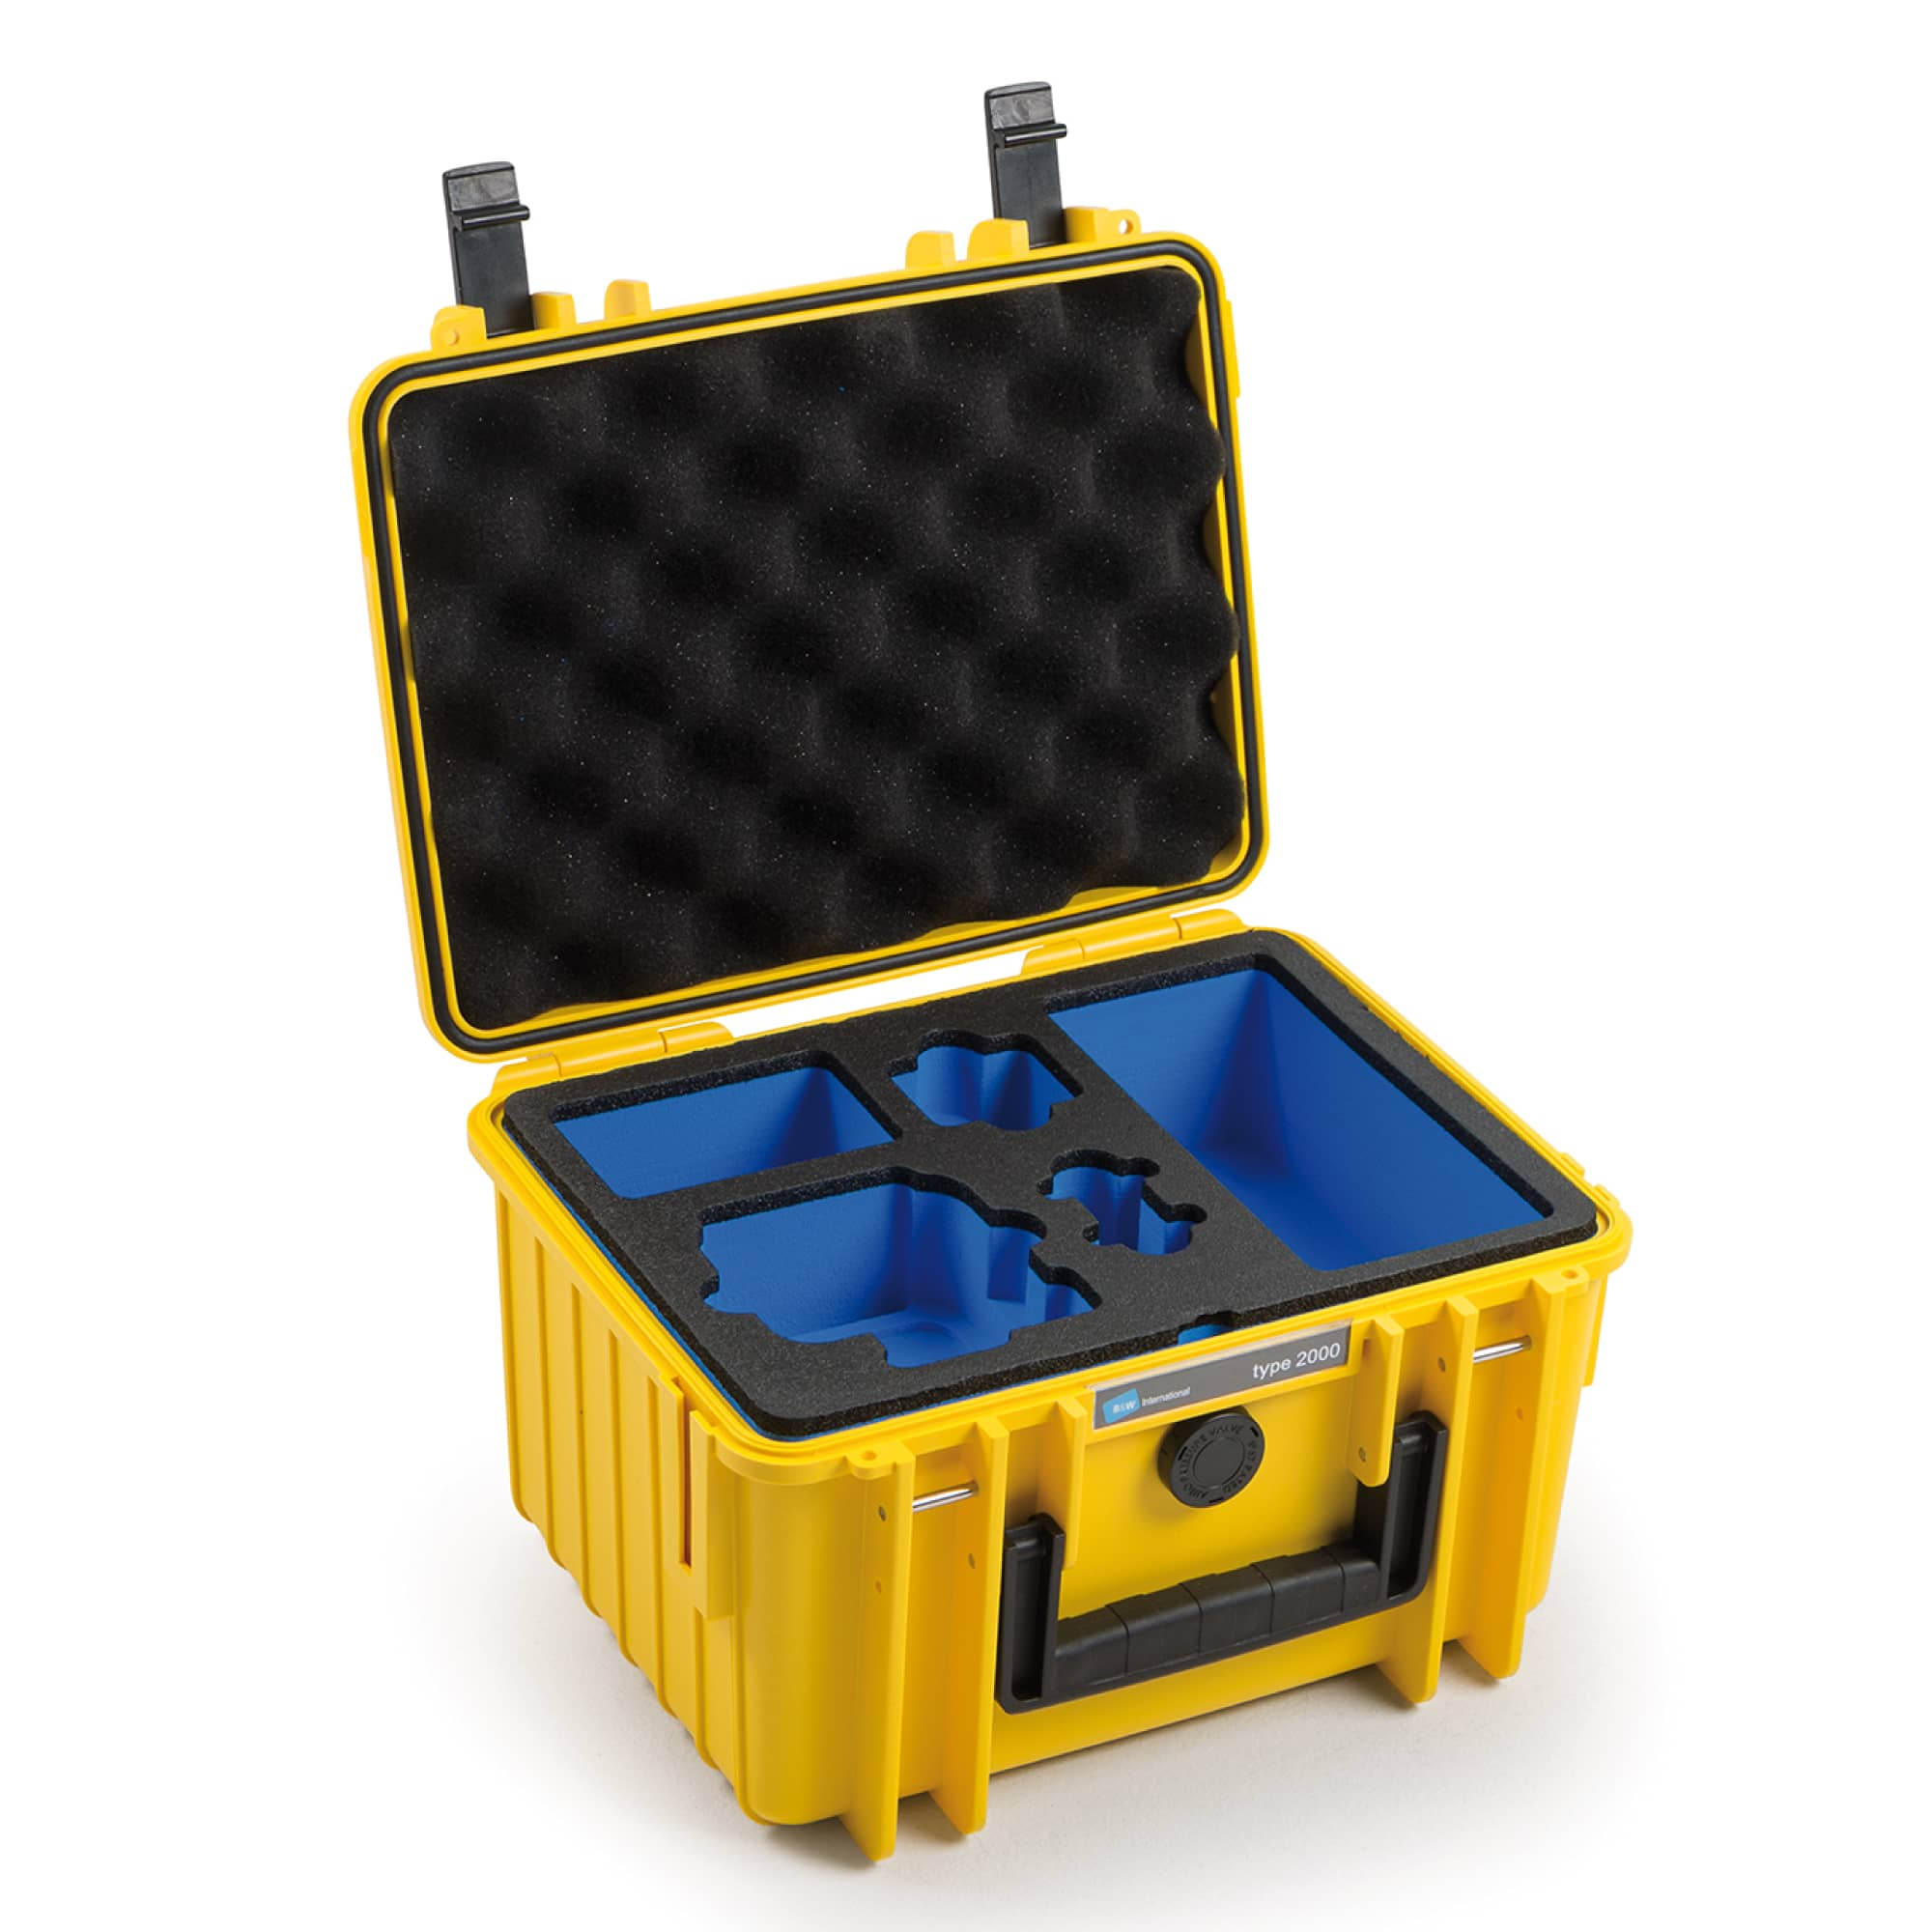 GoPro 8 Outdoor Case Type 2000 from B&W